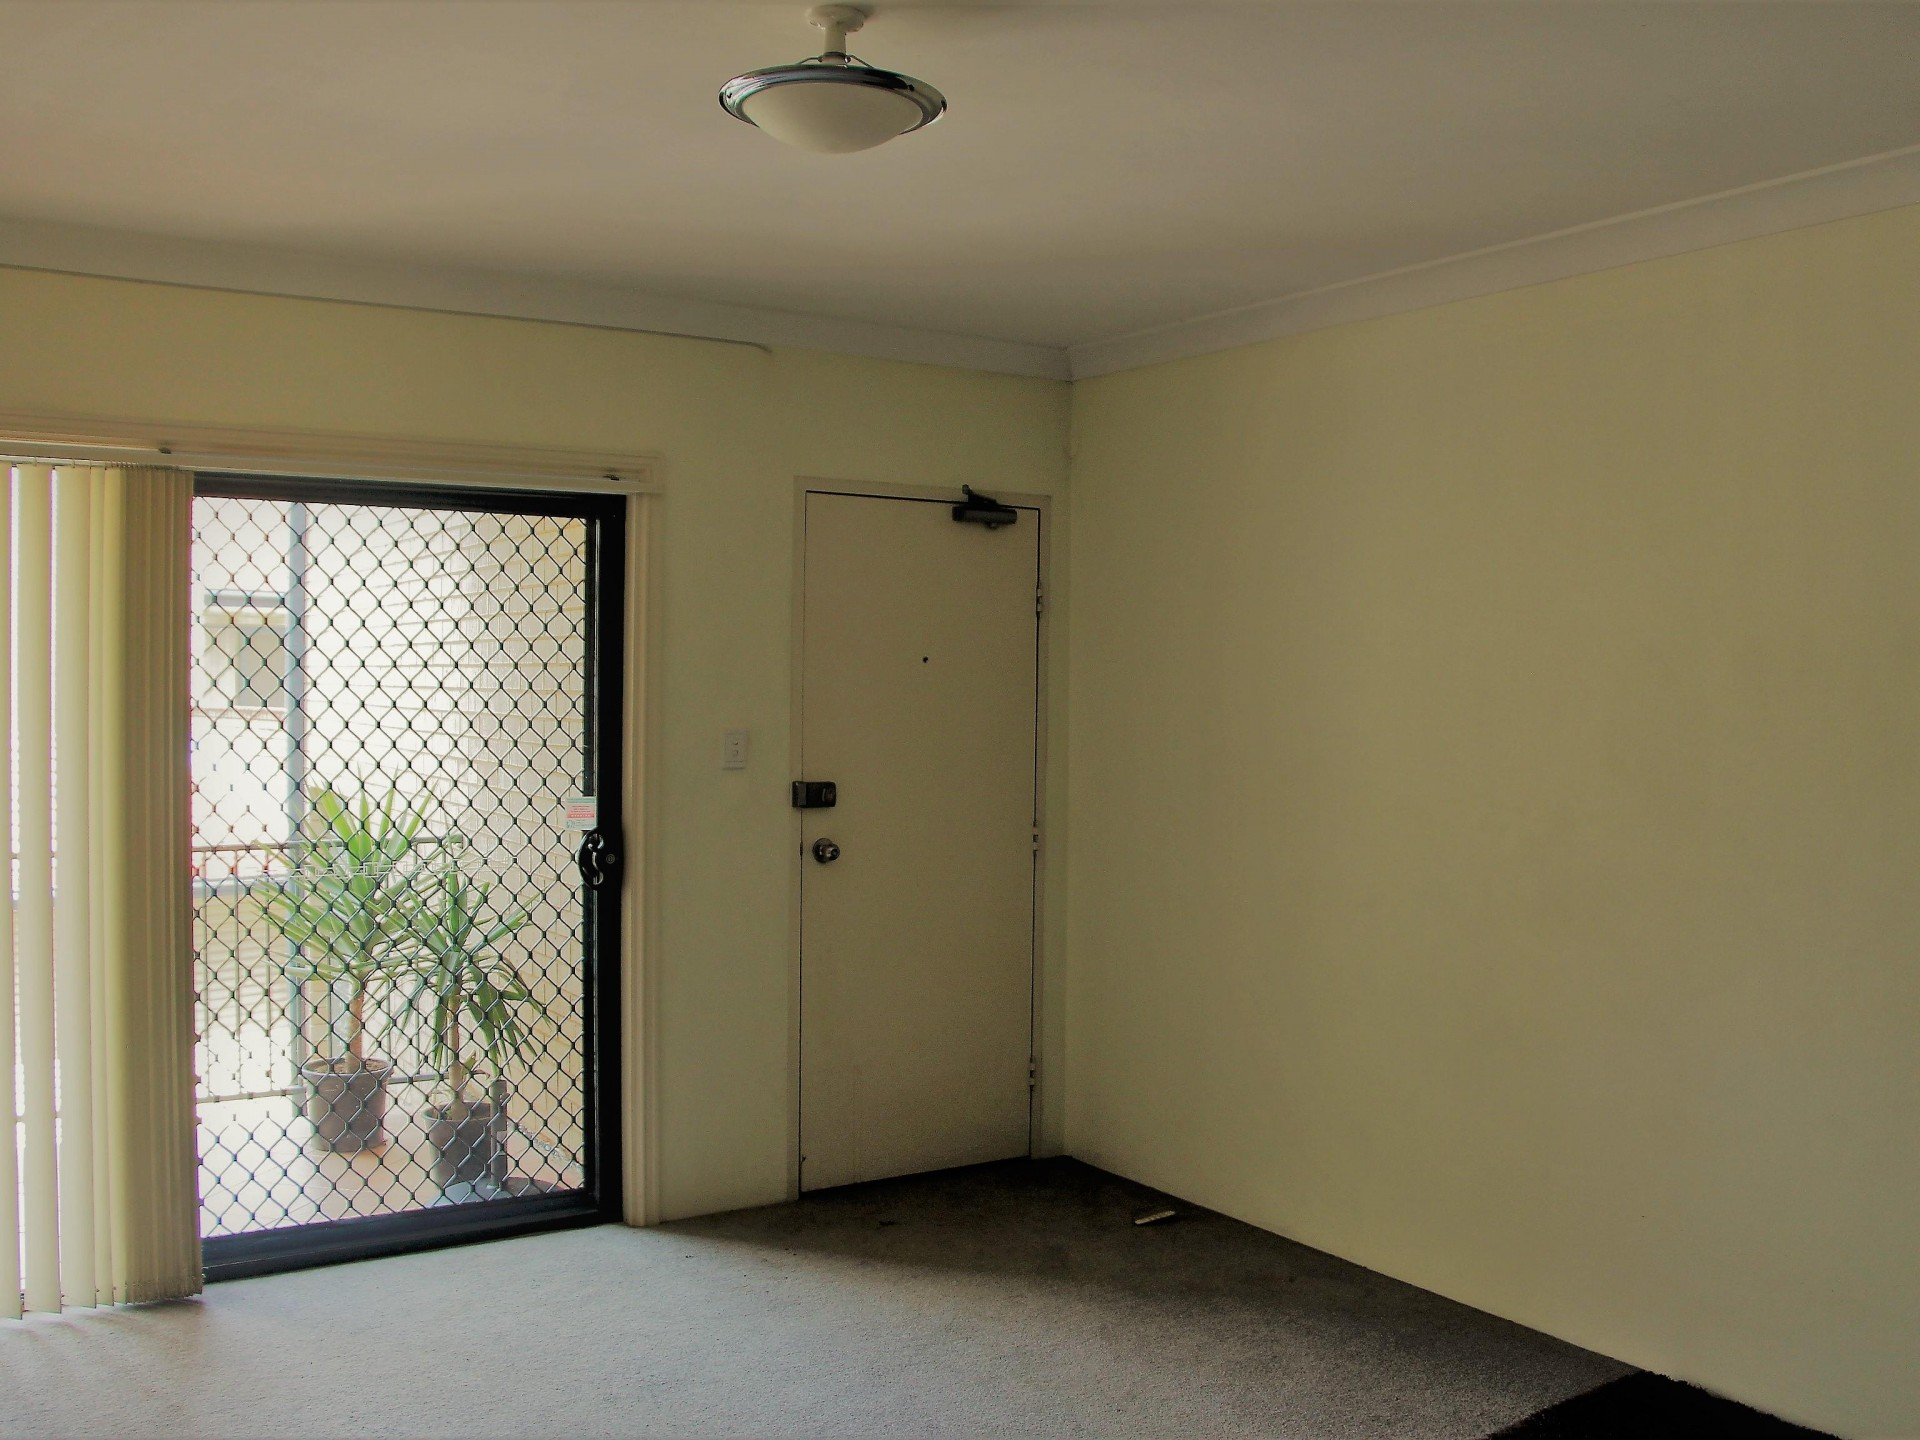 15/29 Central Coast Highway, West Gosford  nsw  2250-2